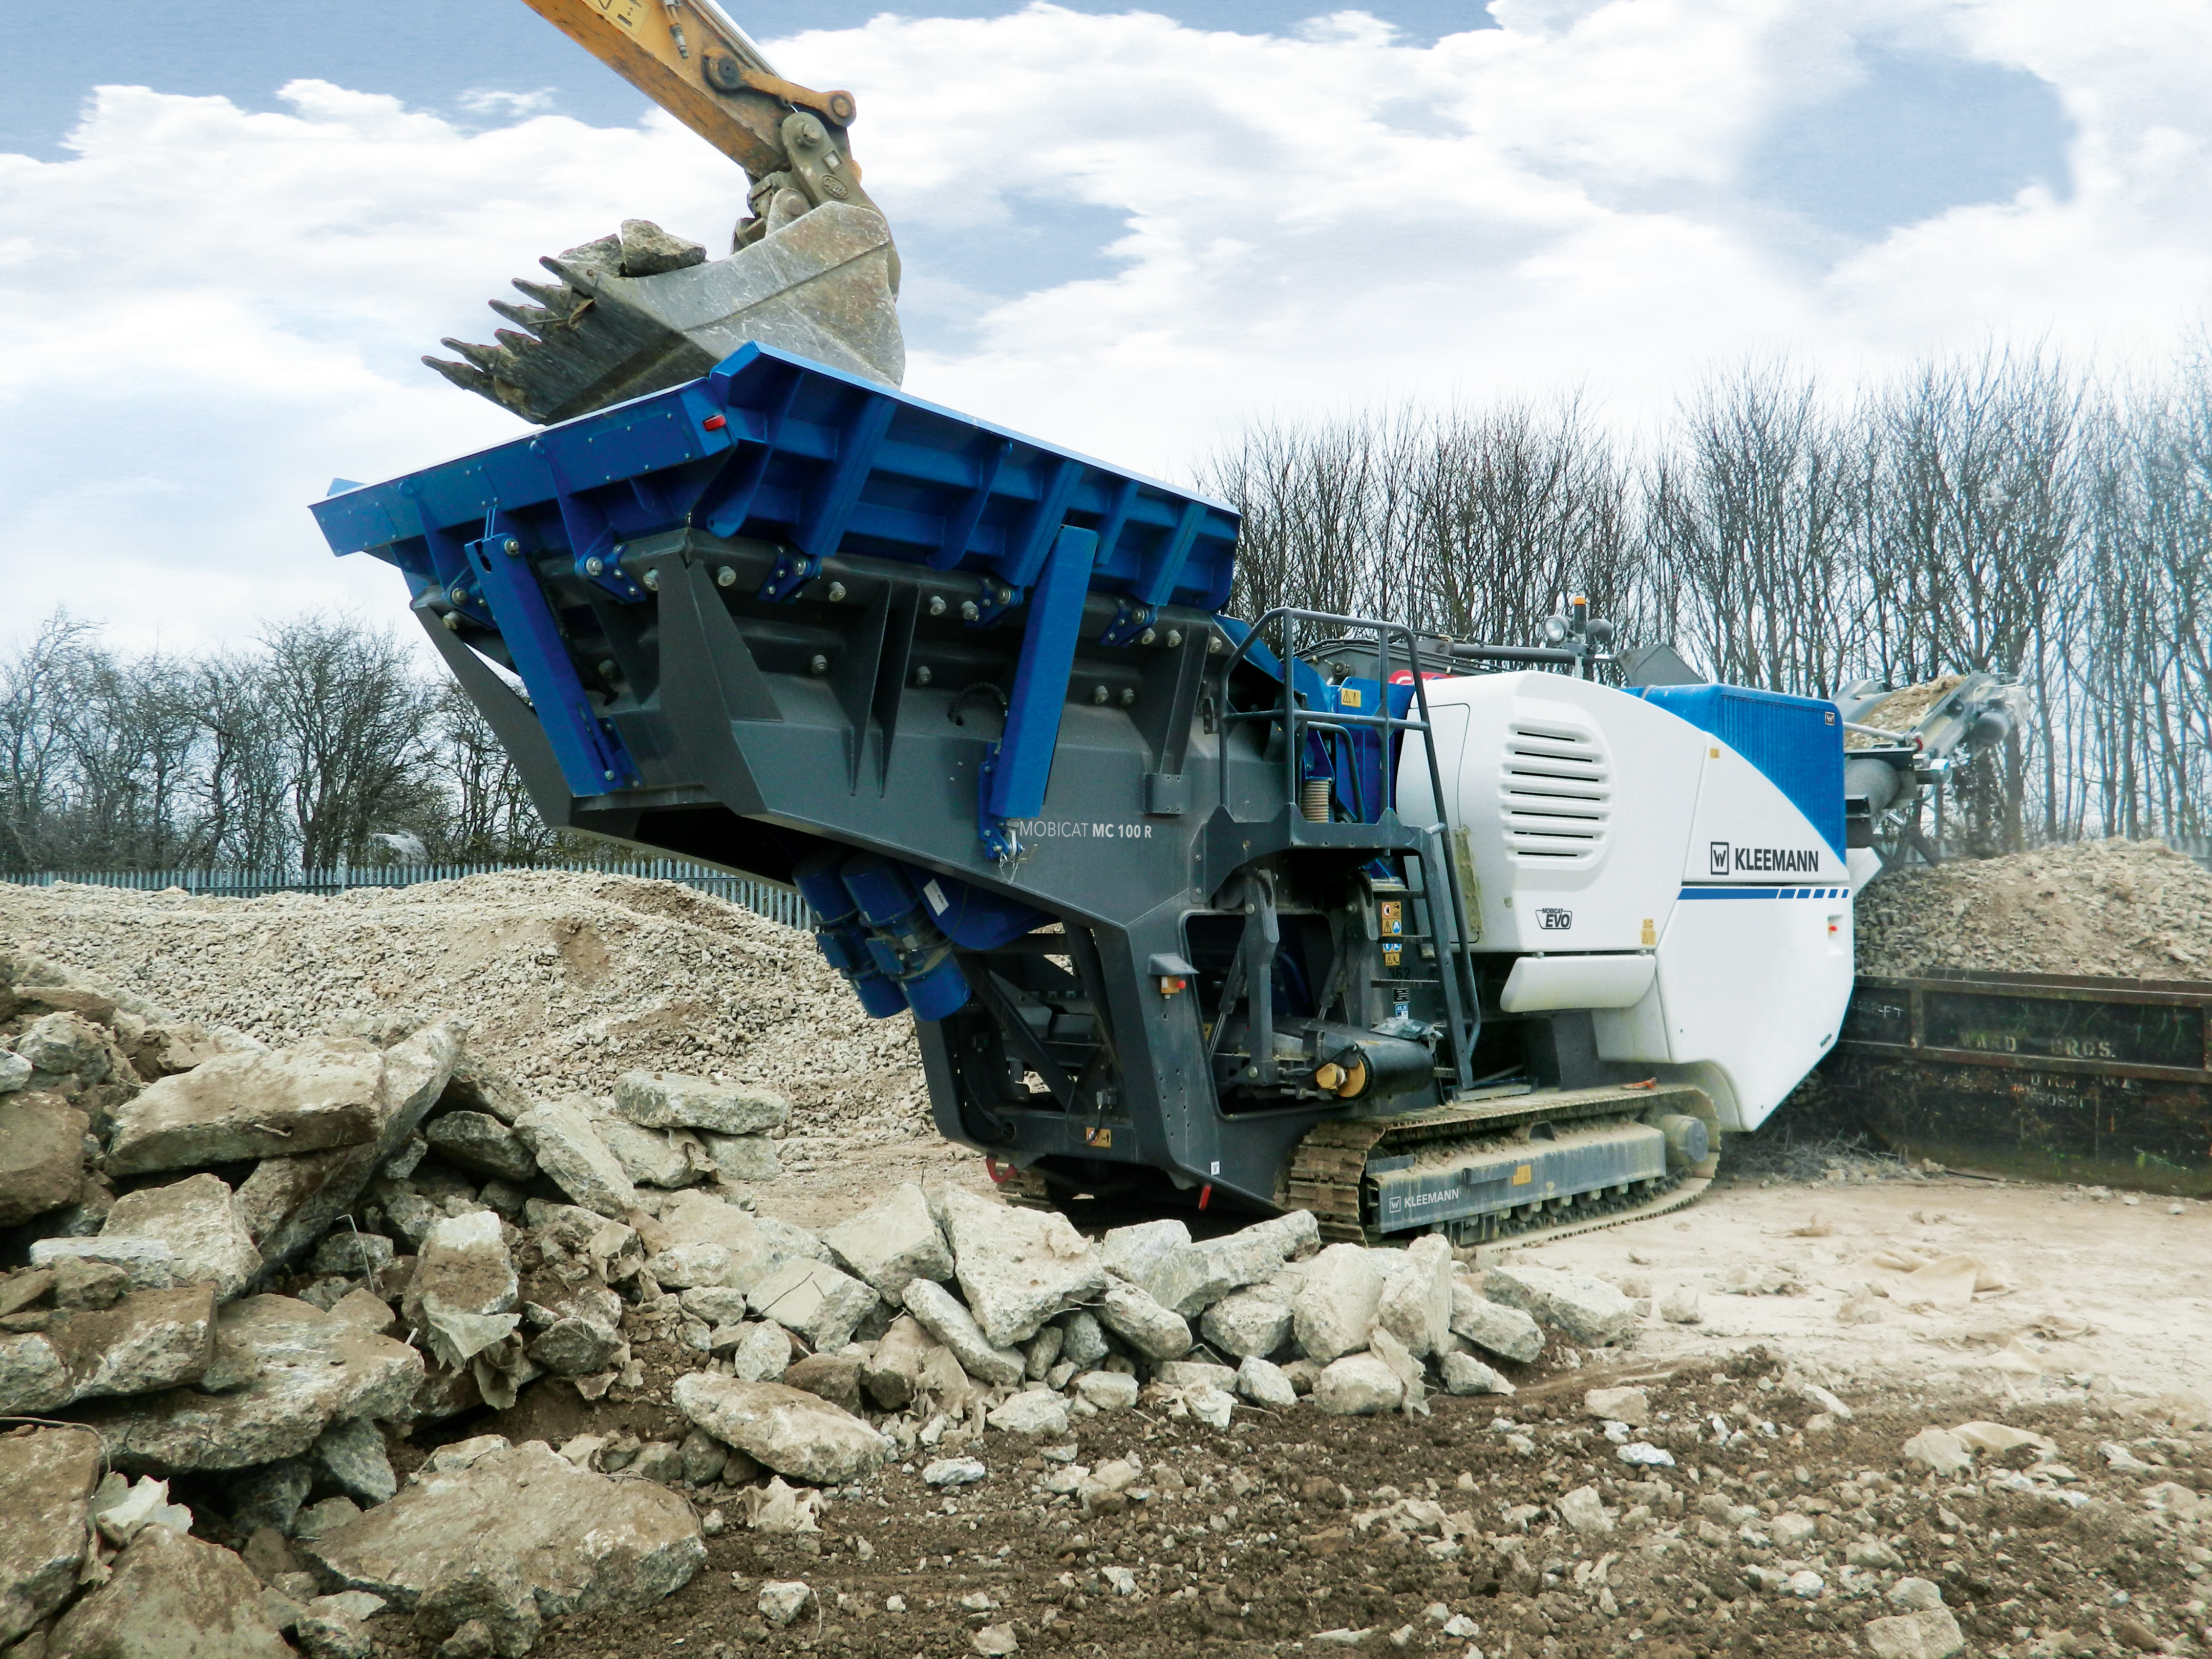 The MC 100 R EVO mobile jaw crusher from the latest Kleemann EVO generation is highly versatile thanks to the maximum feed capacity of 220 t/h.